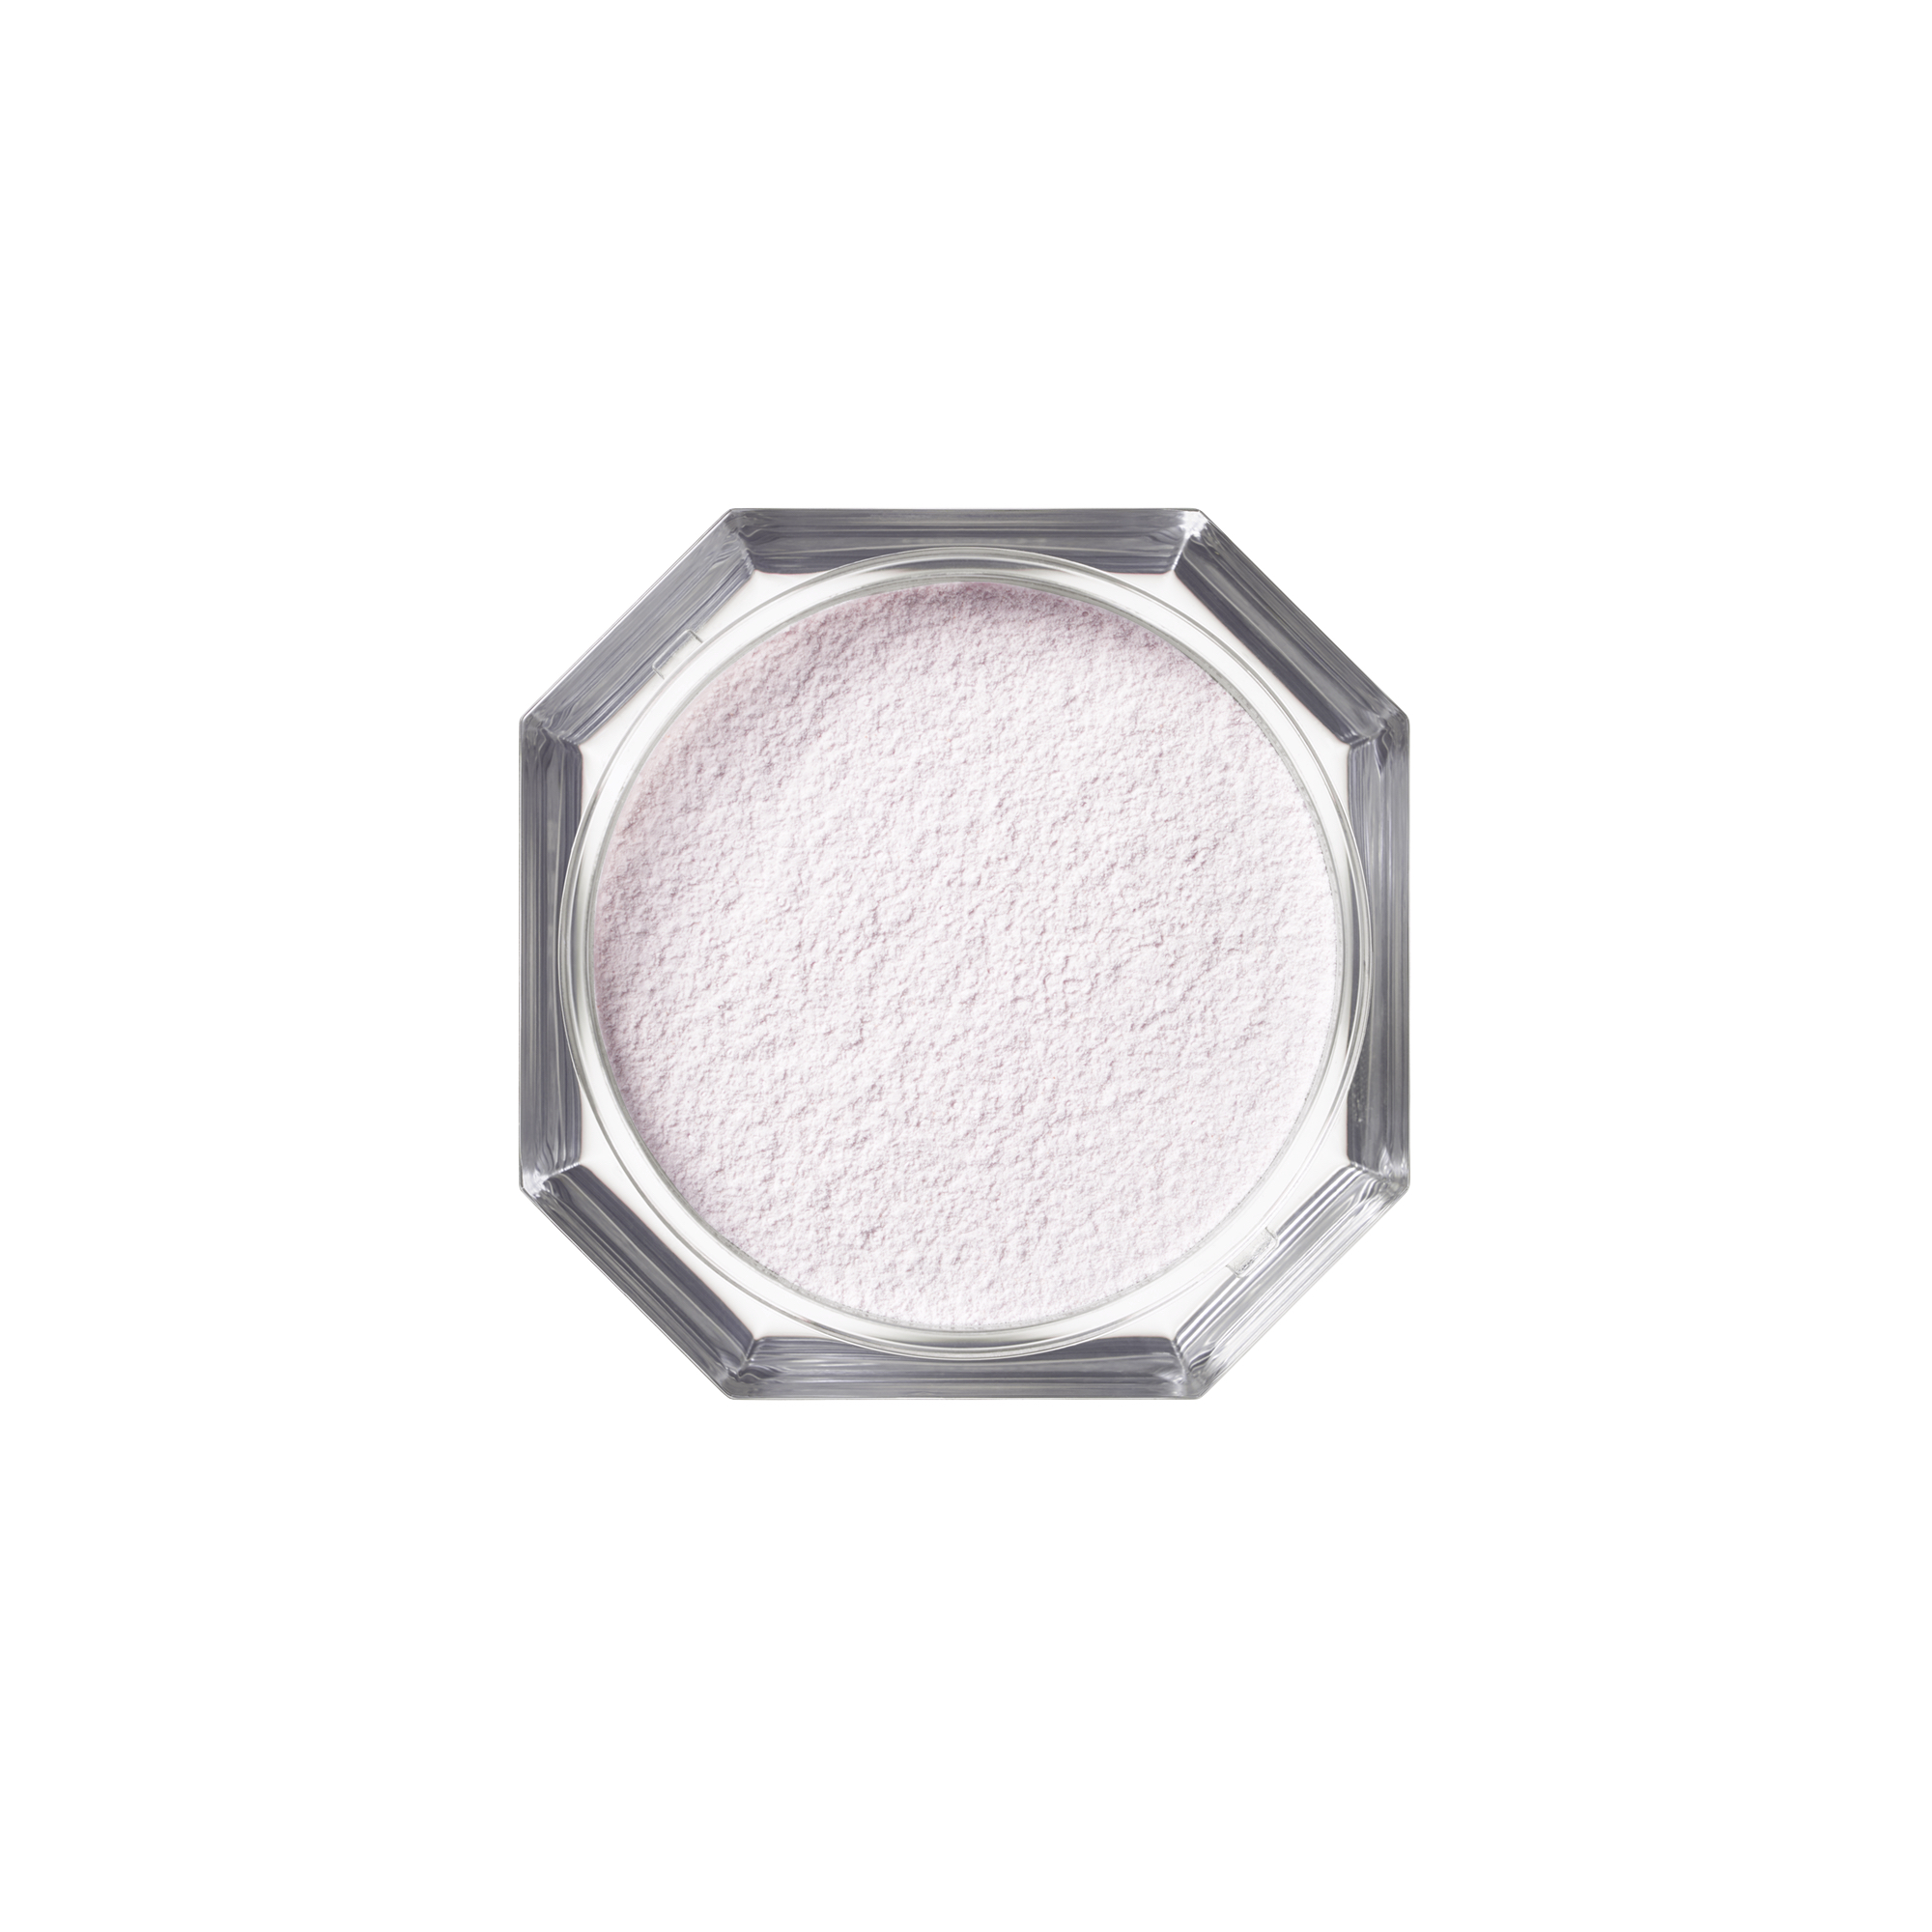 FB Pro Filt'r Instant Retouch Setting Powder - Lavender - AED 158